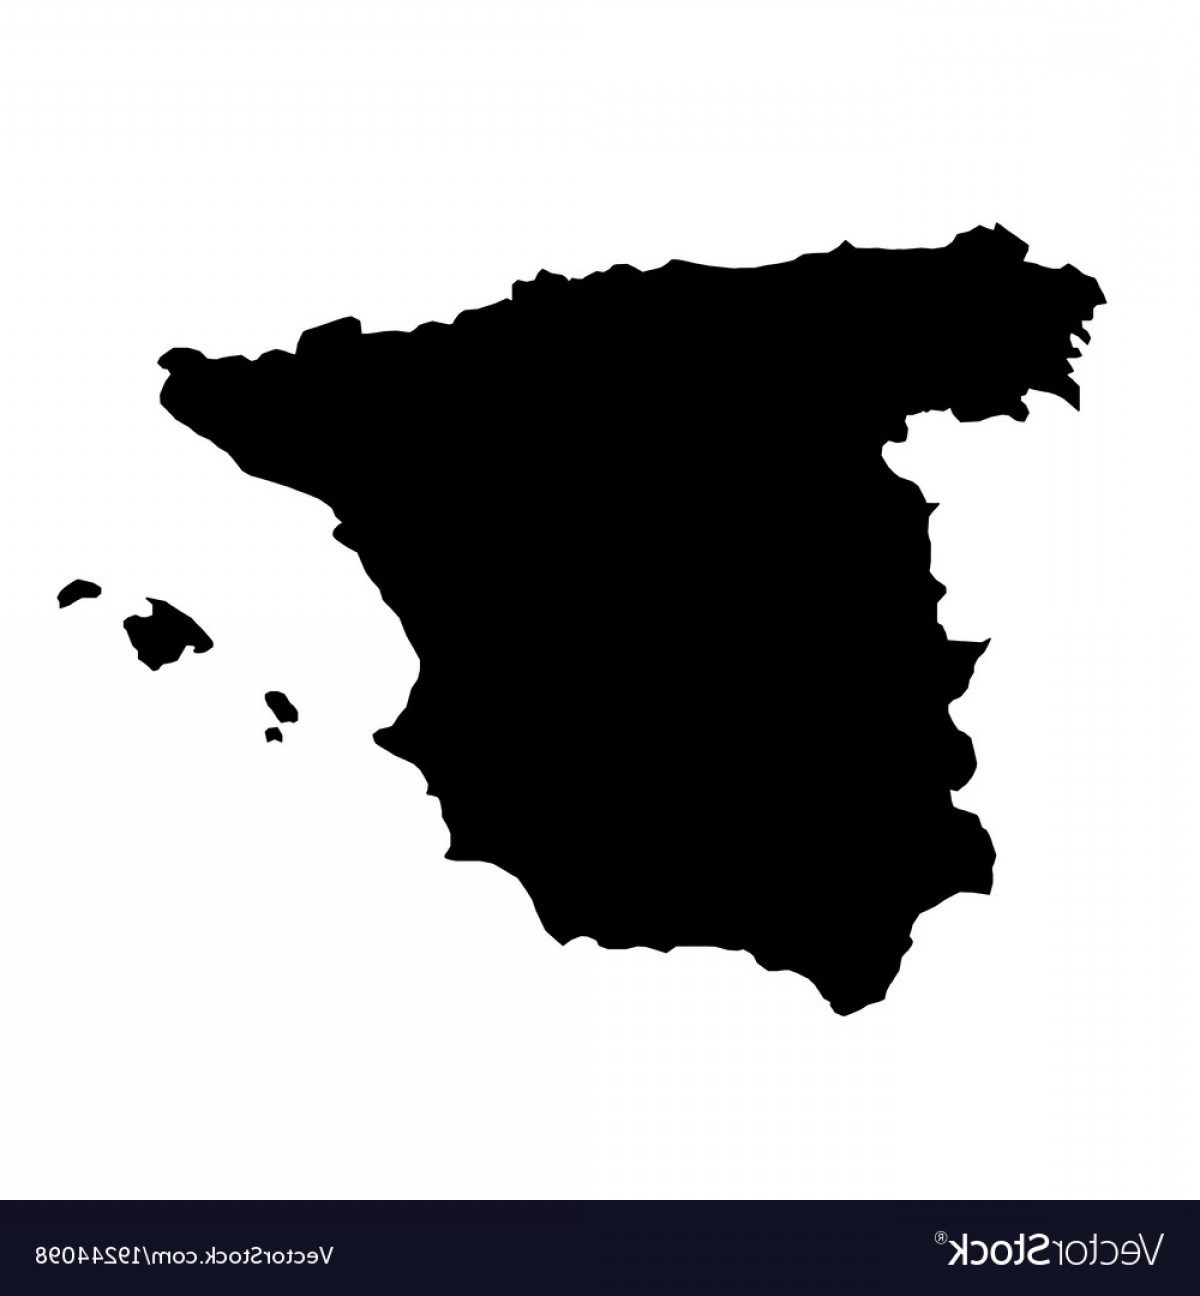 Spain Outline Vector: Black Silhouette Country Borders Map Of Spain On Vector